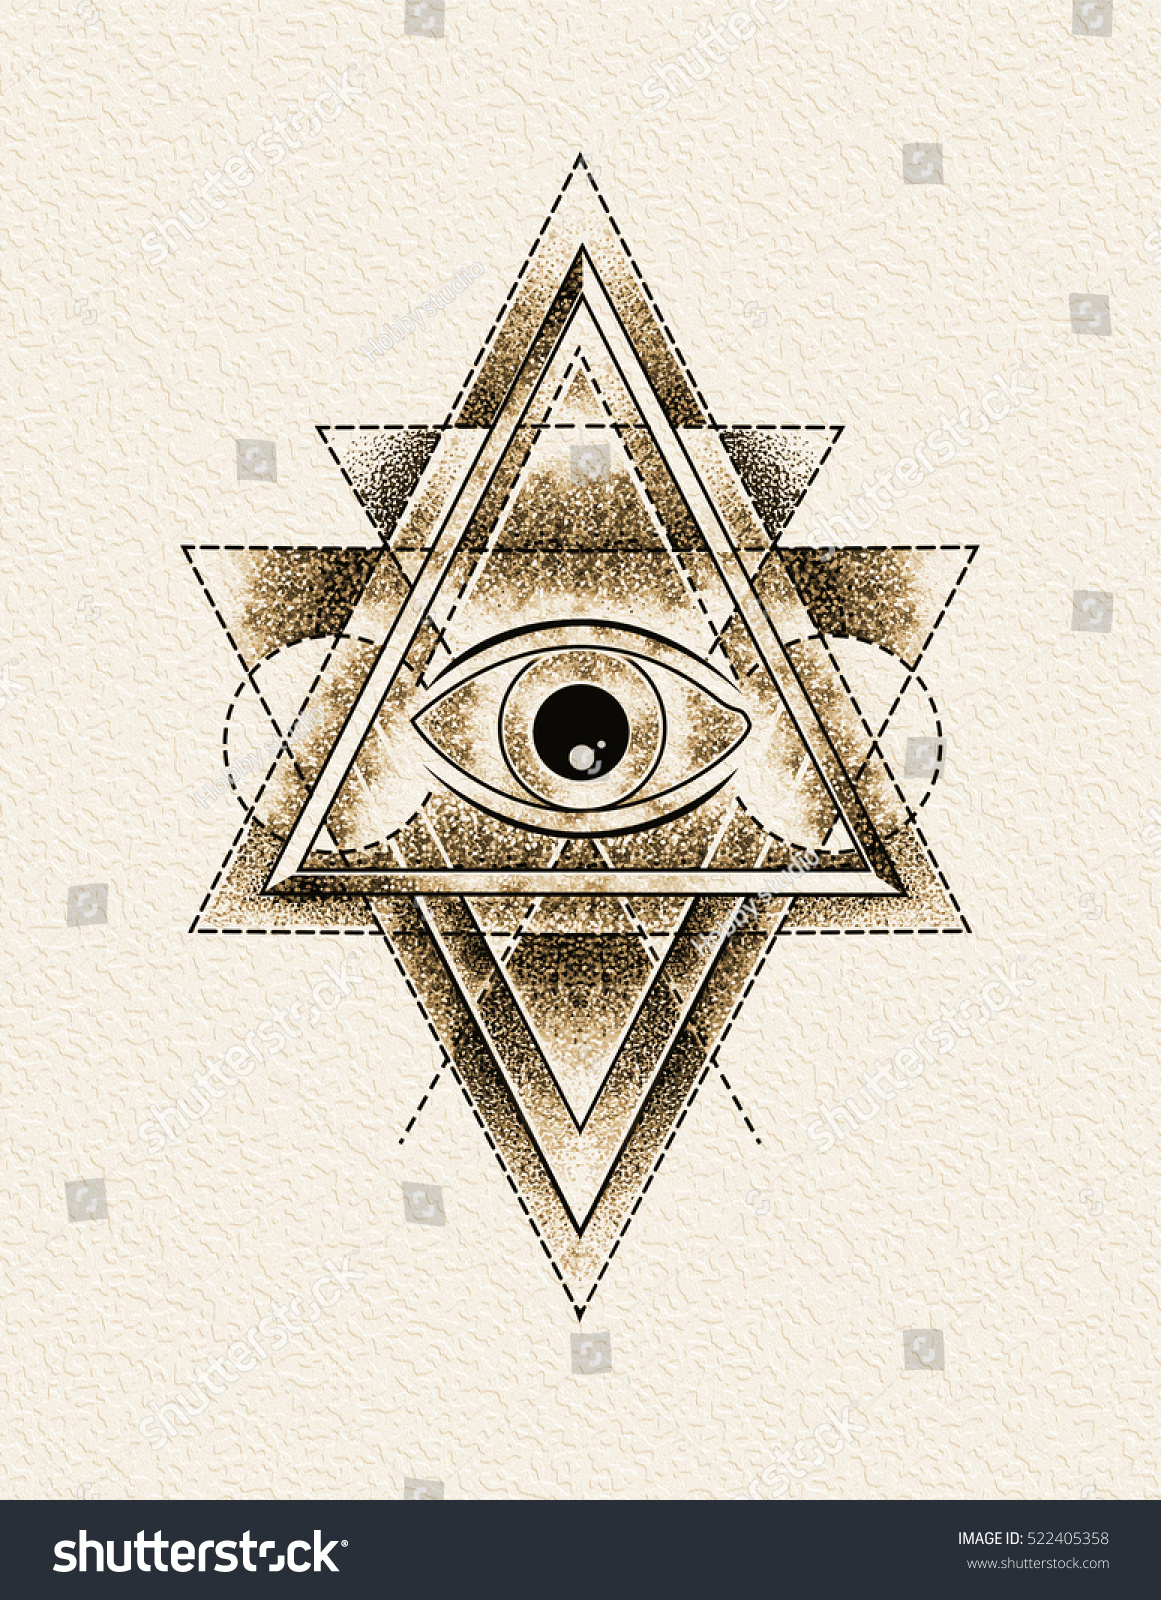 All seeing eye delta triangle symbol stock illustration 522405358 all seeing eye in delta triangle symbol tattoo with a dotted lineillustration biocorpaavc Choice Image